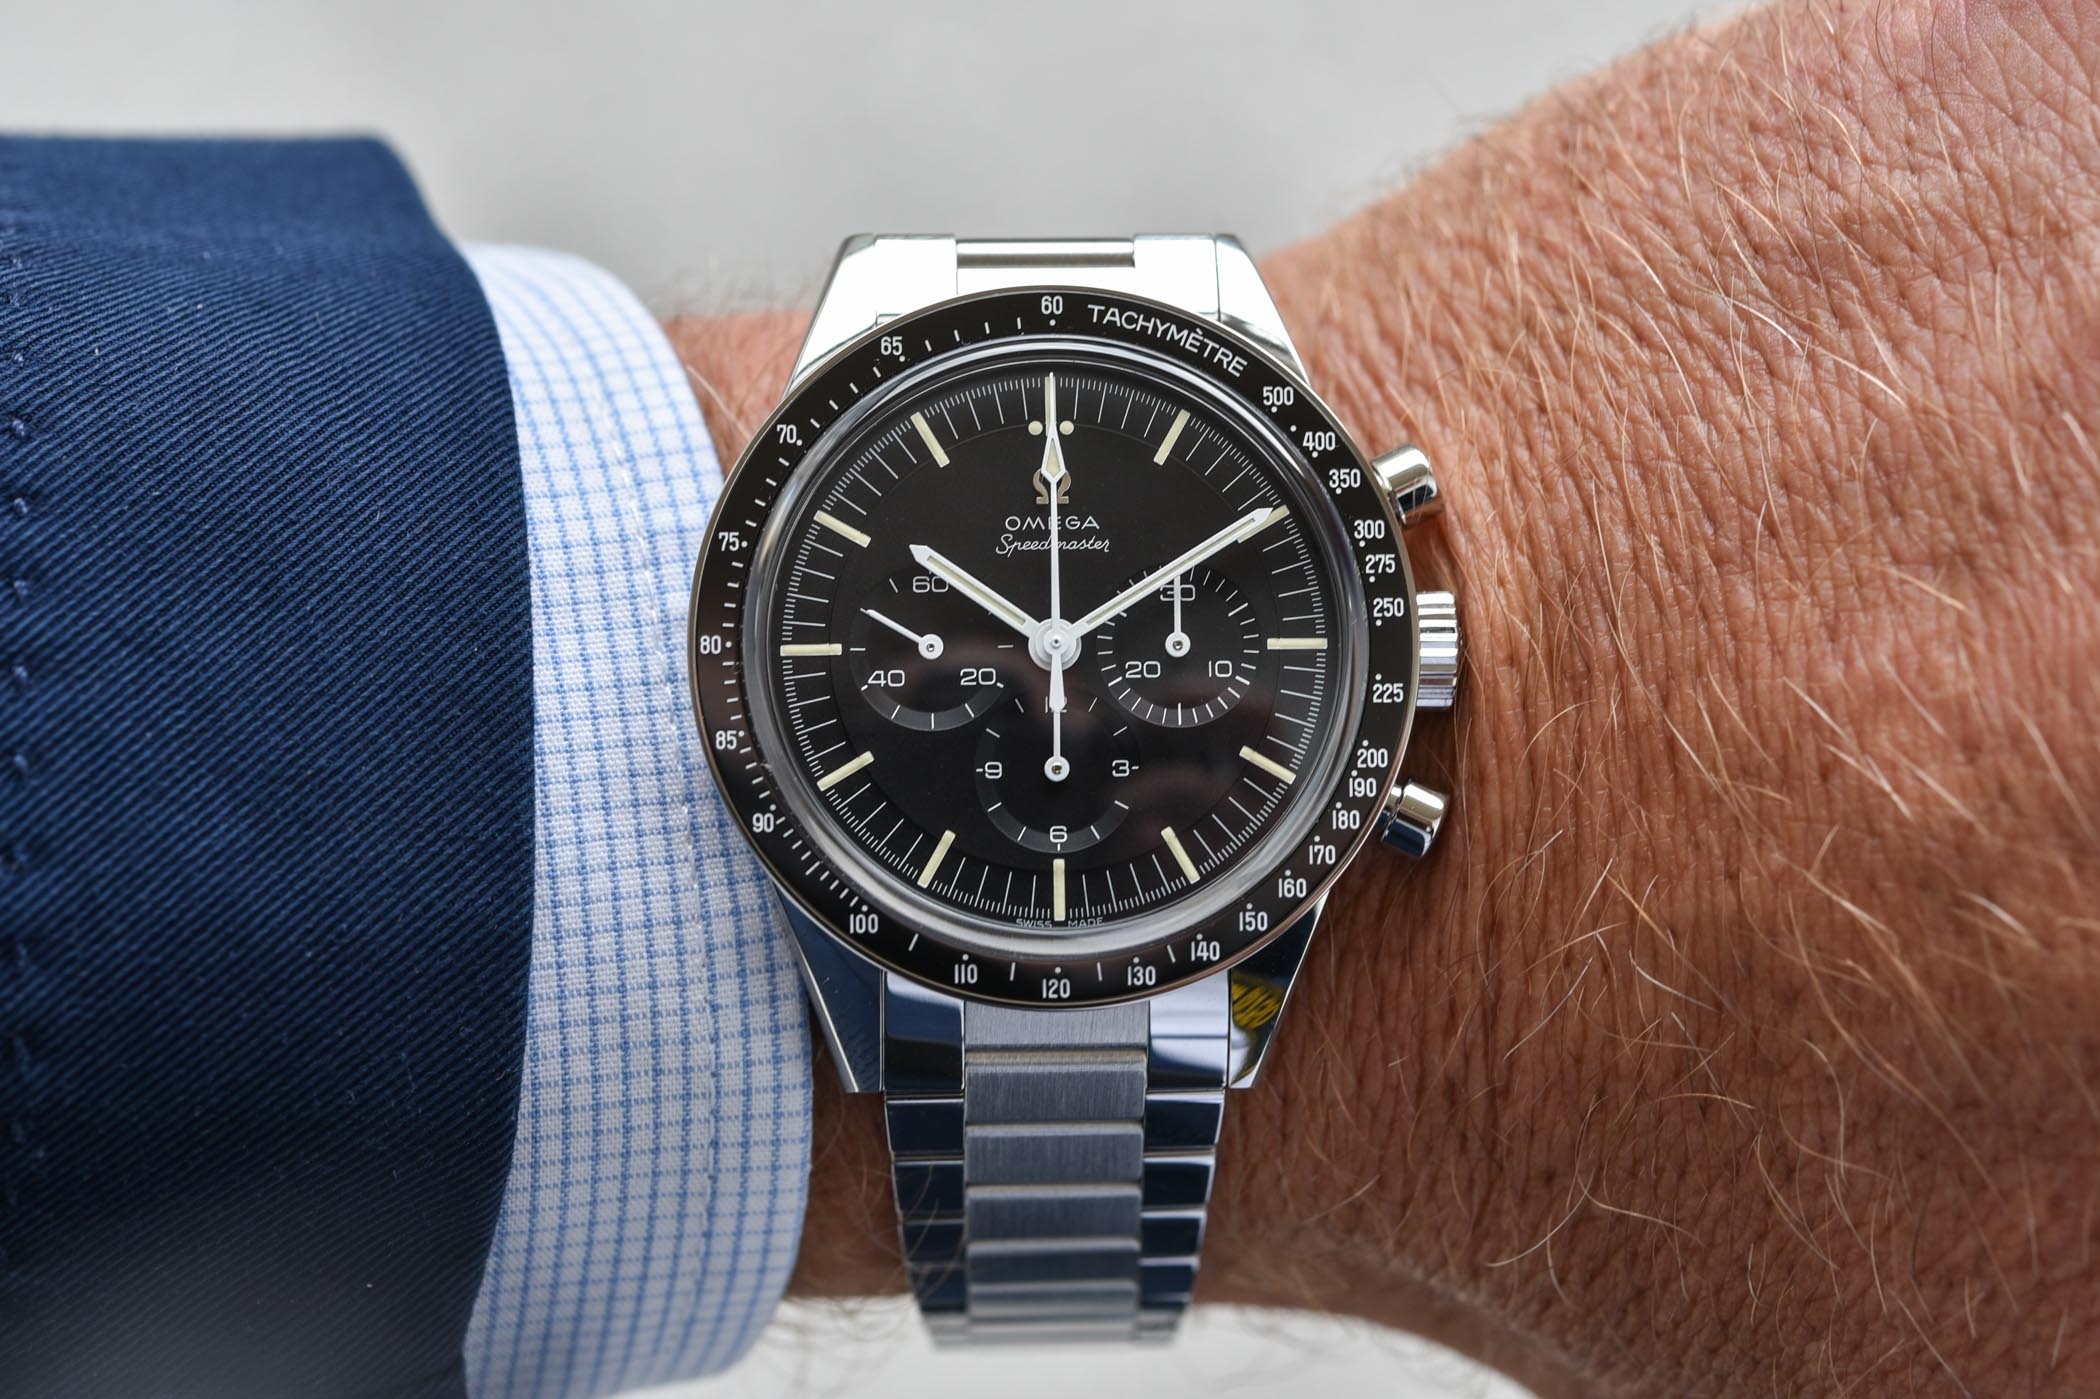 Top 10 Chronographs of 2020 by MONOCHROME - Buying Guide